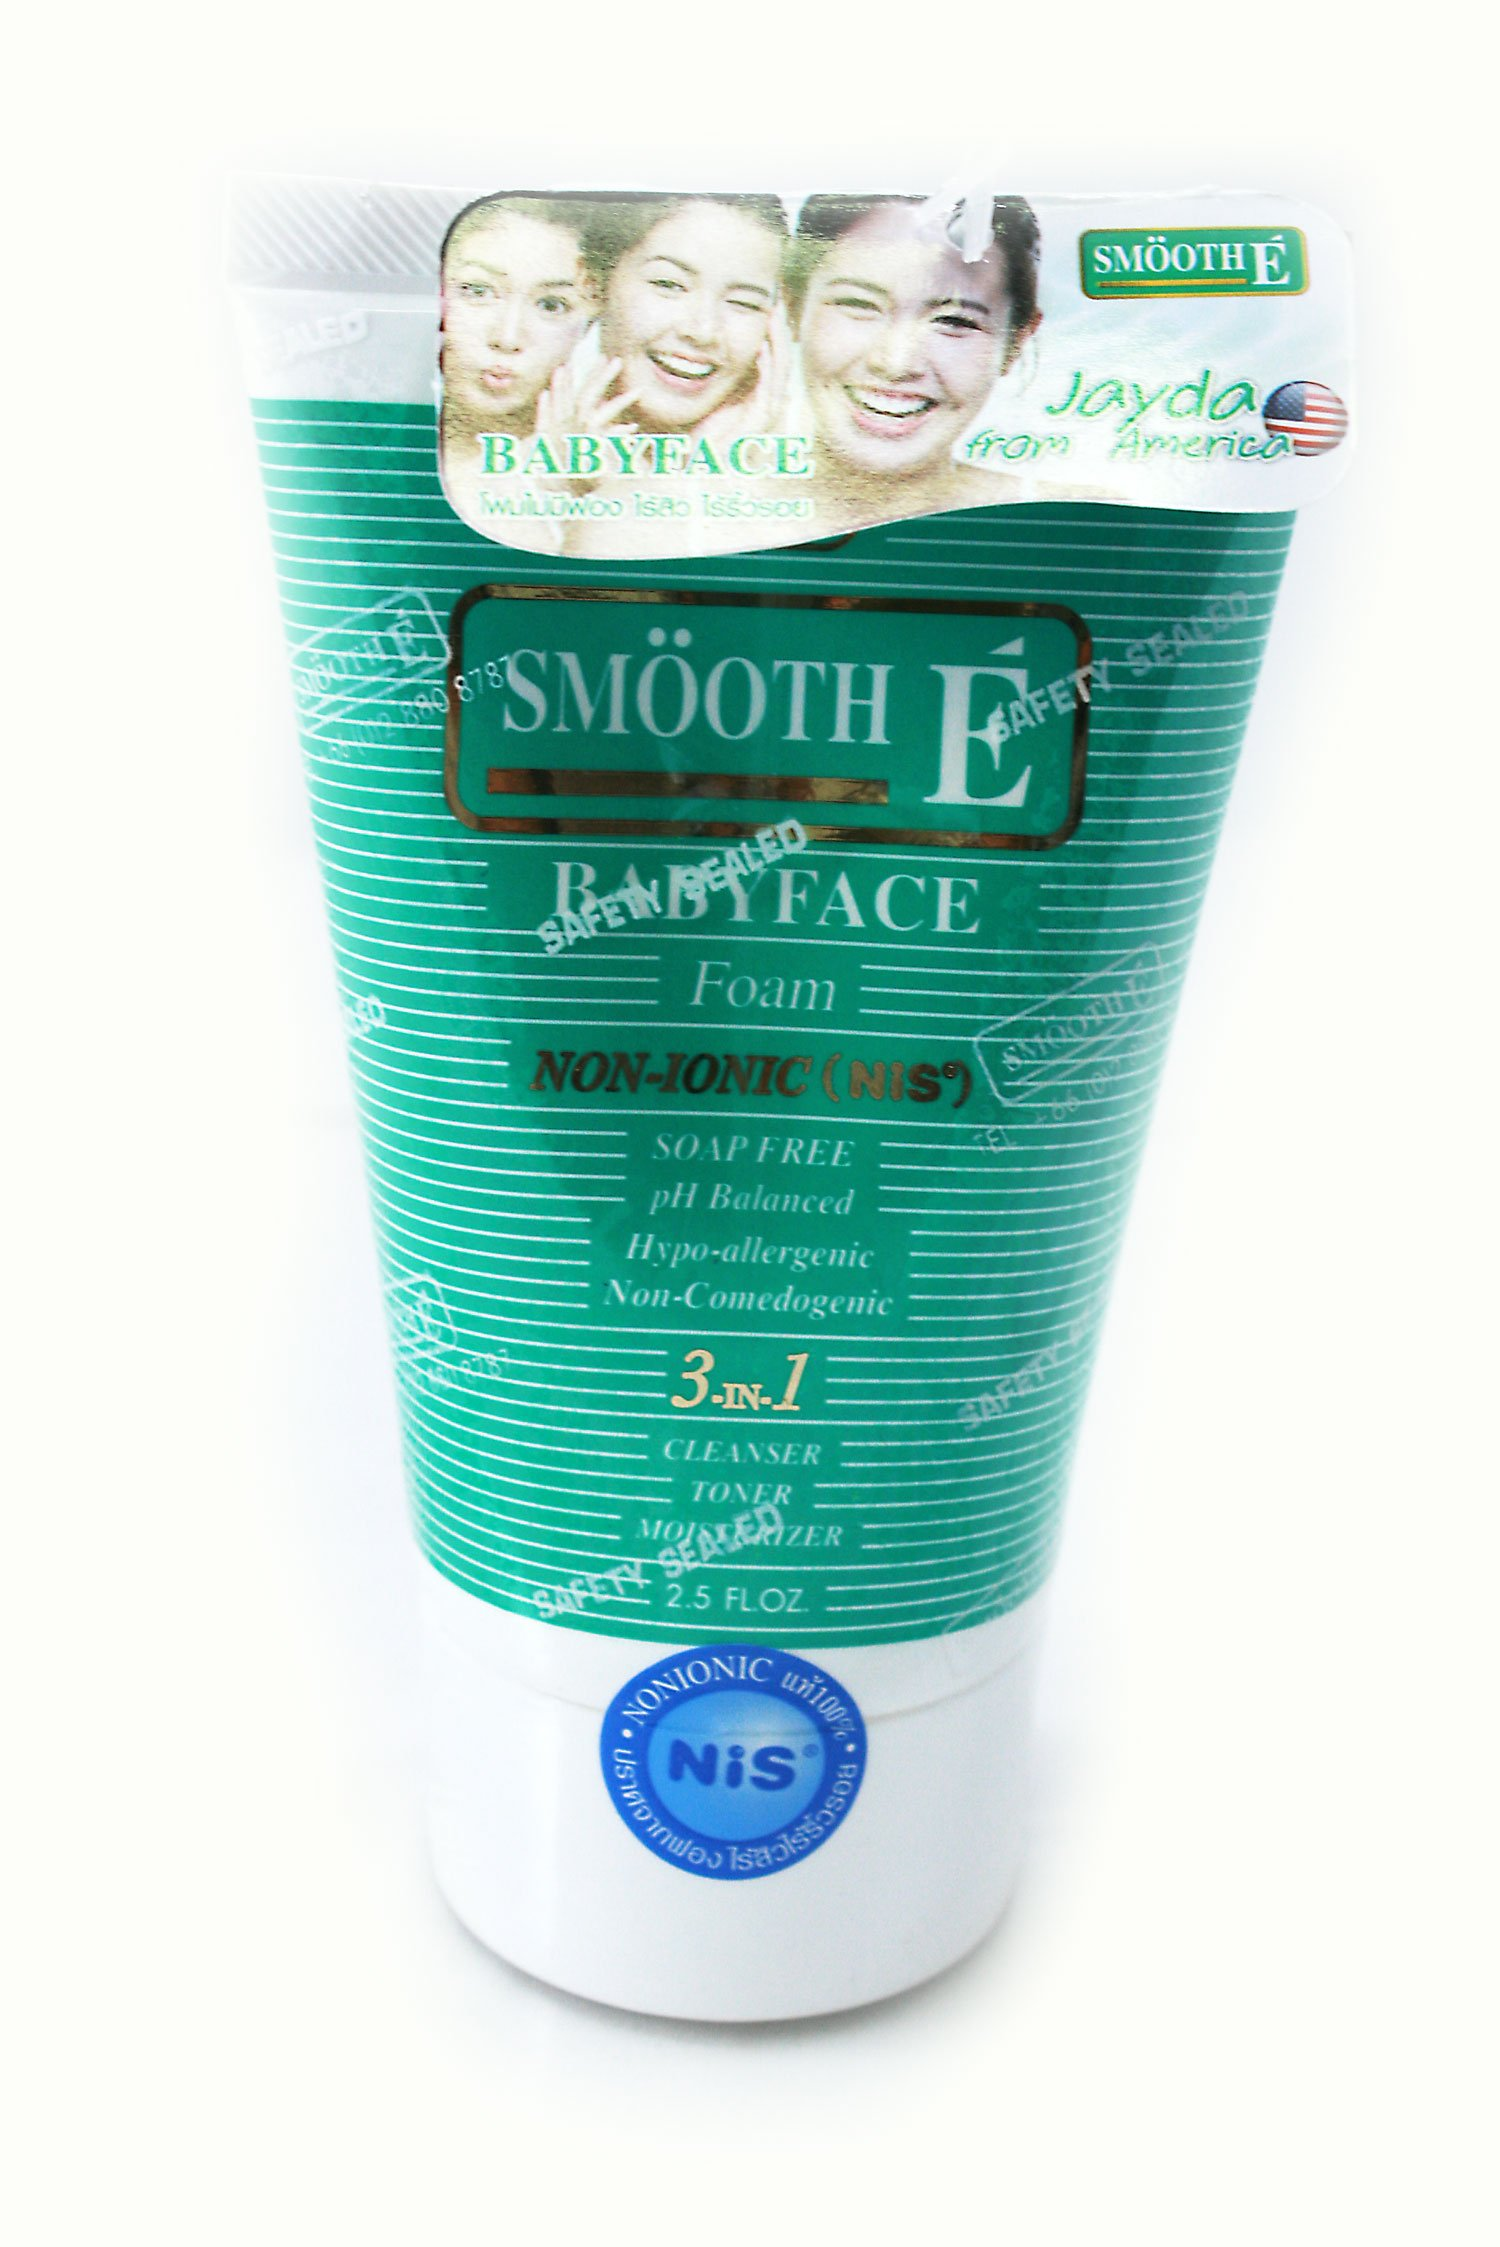 Smooth E Babyface Foams Non_ionic Facial Cleanser for Men and Women Net wt. 2.5 FL.OZ.